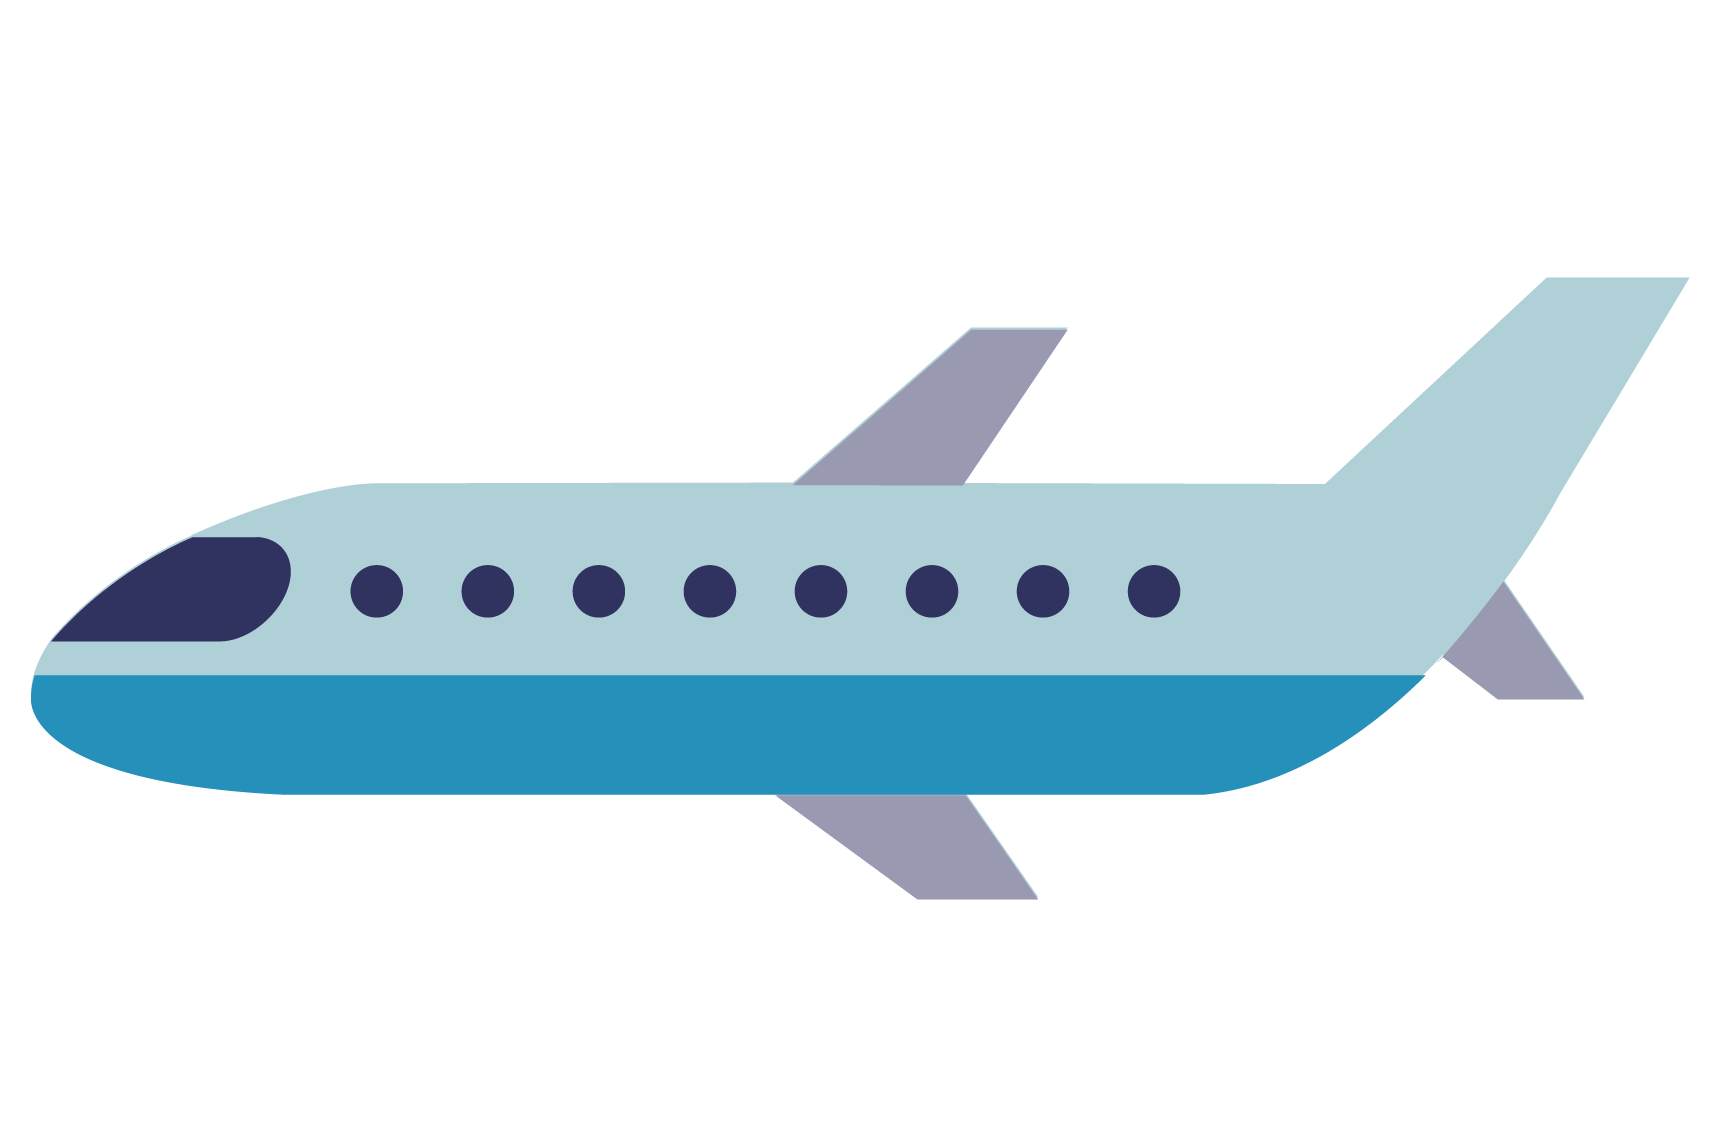 Cartoon airplane png. Aircraft animation plane transprent